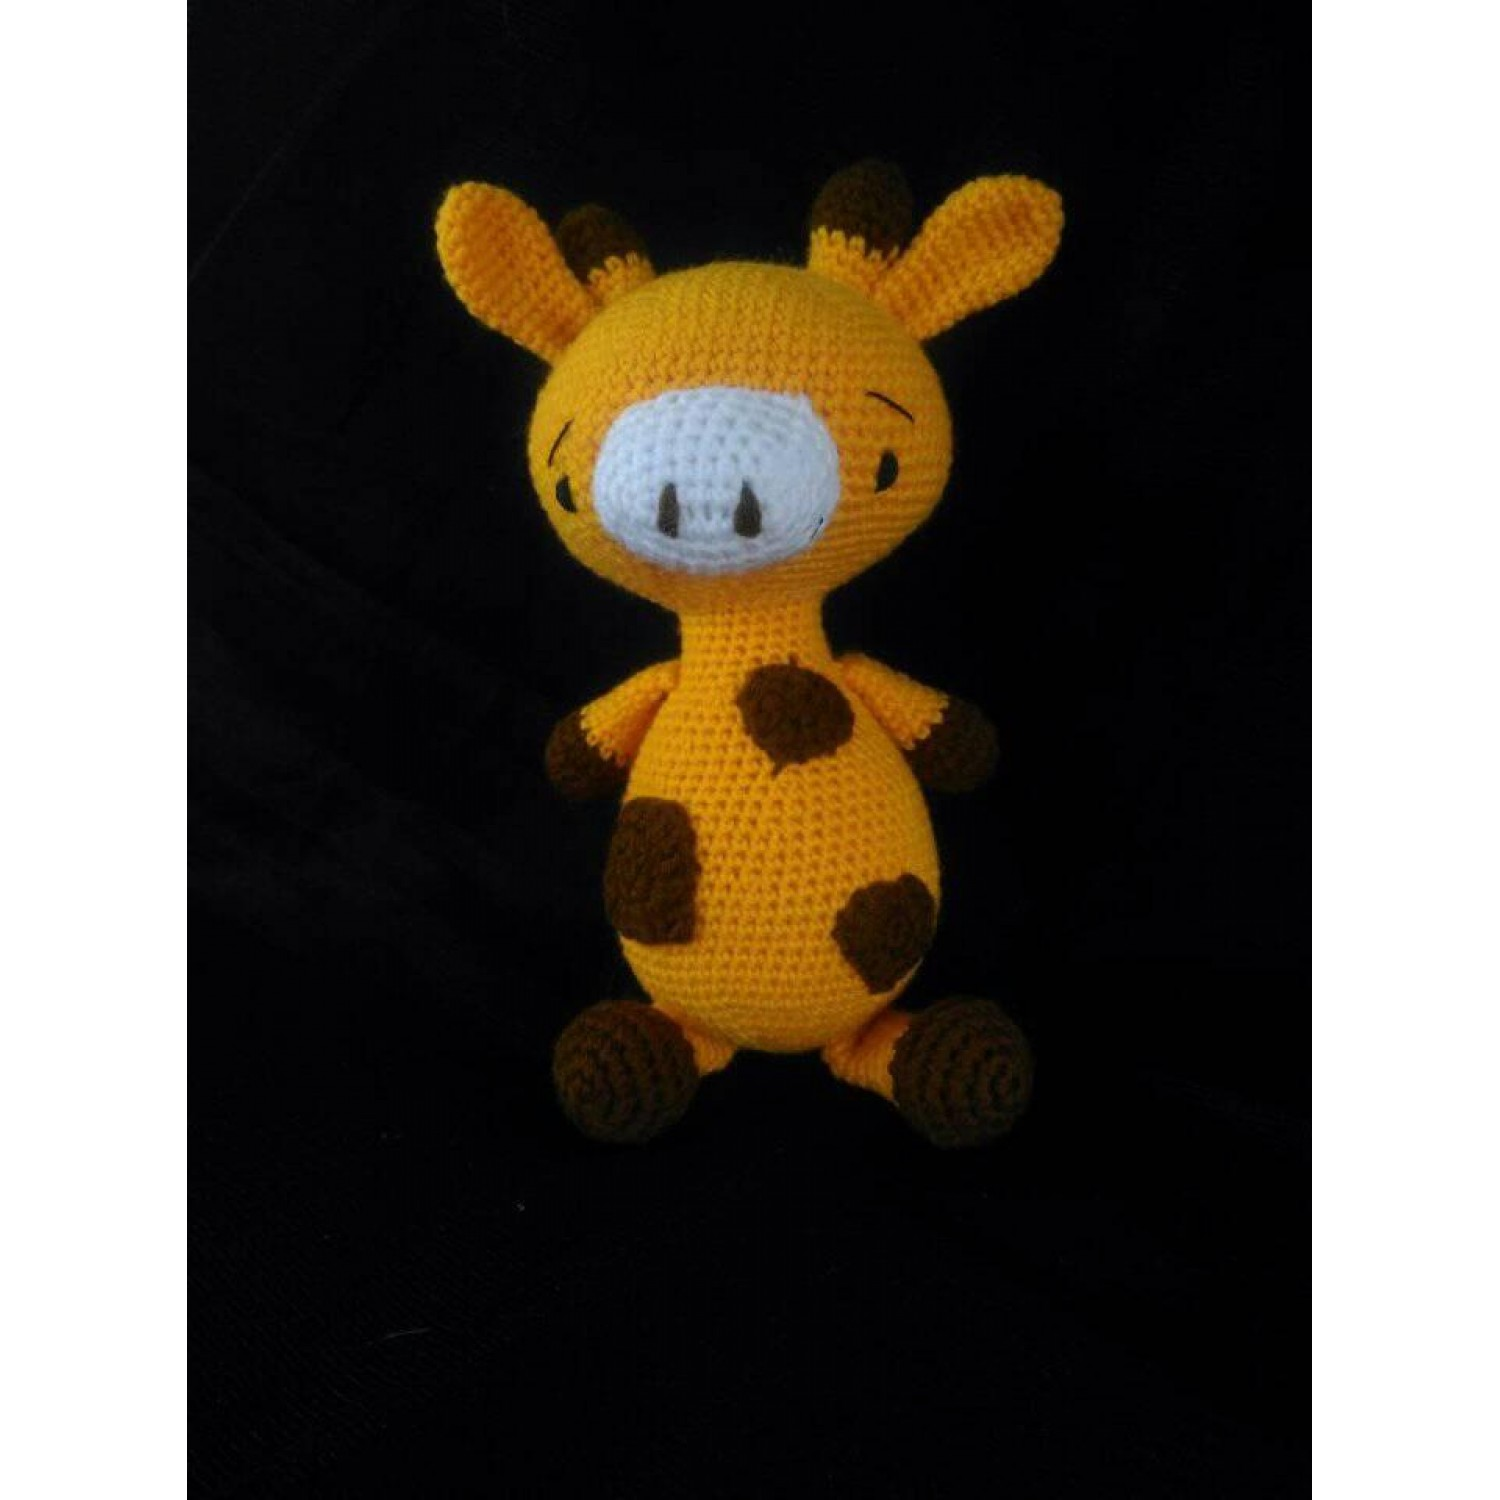 Handmade small giraffe ( Suitable for all age group)- Only one